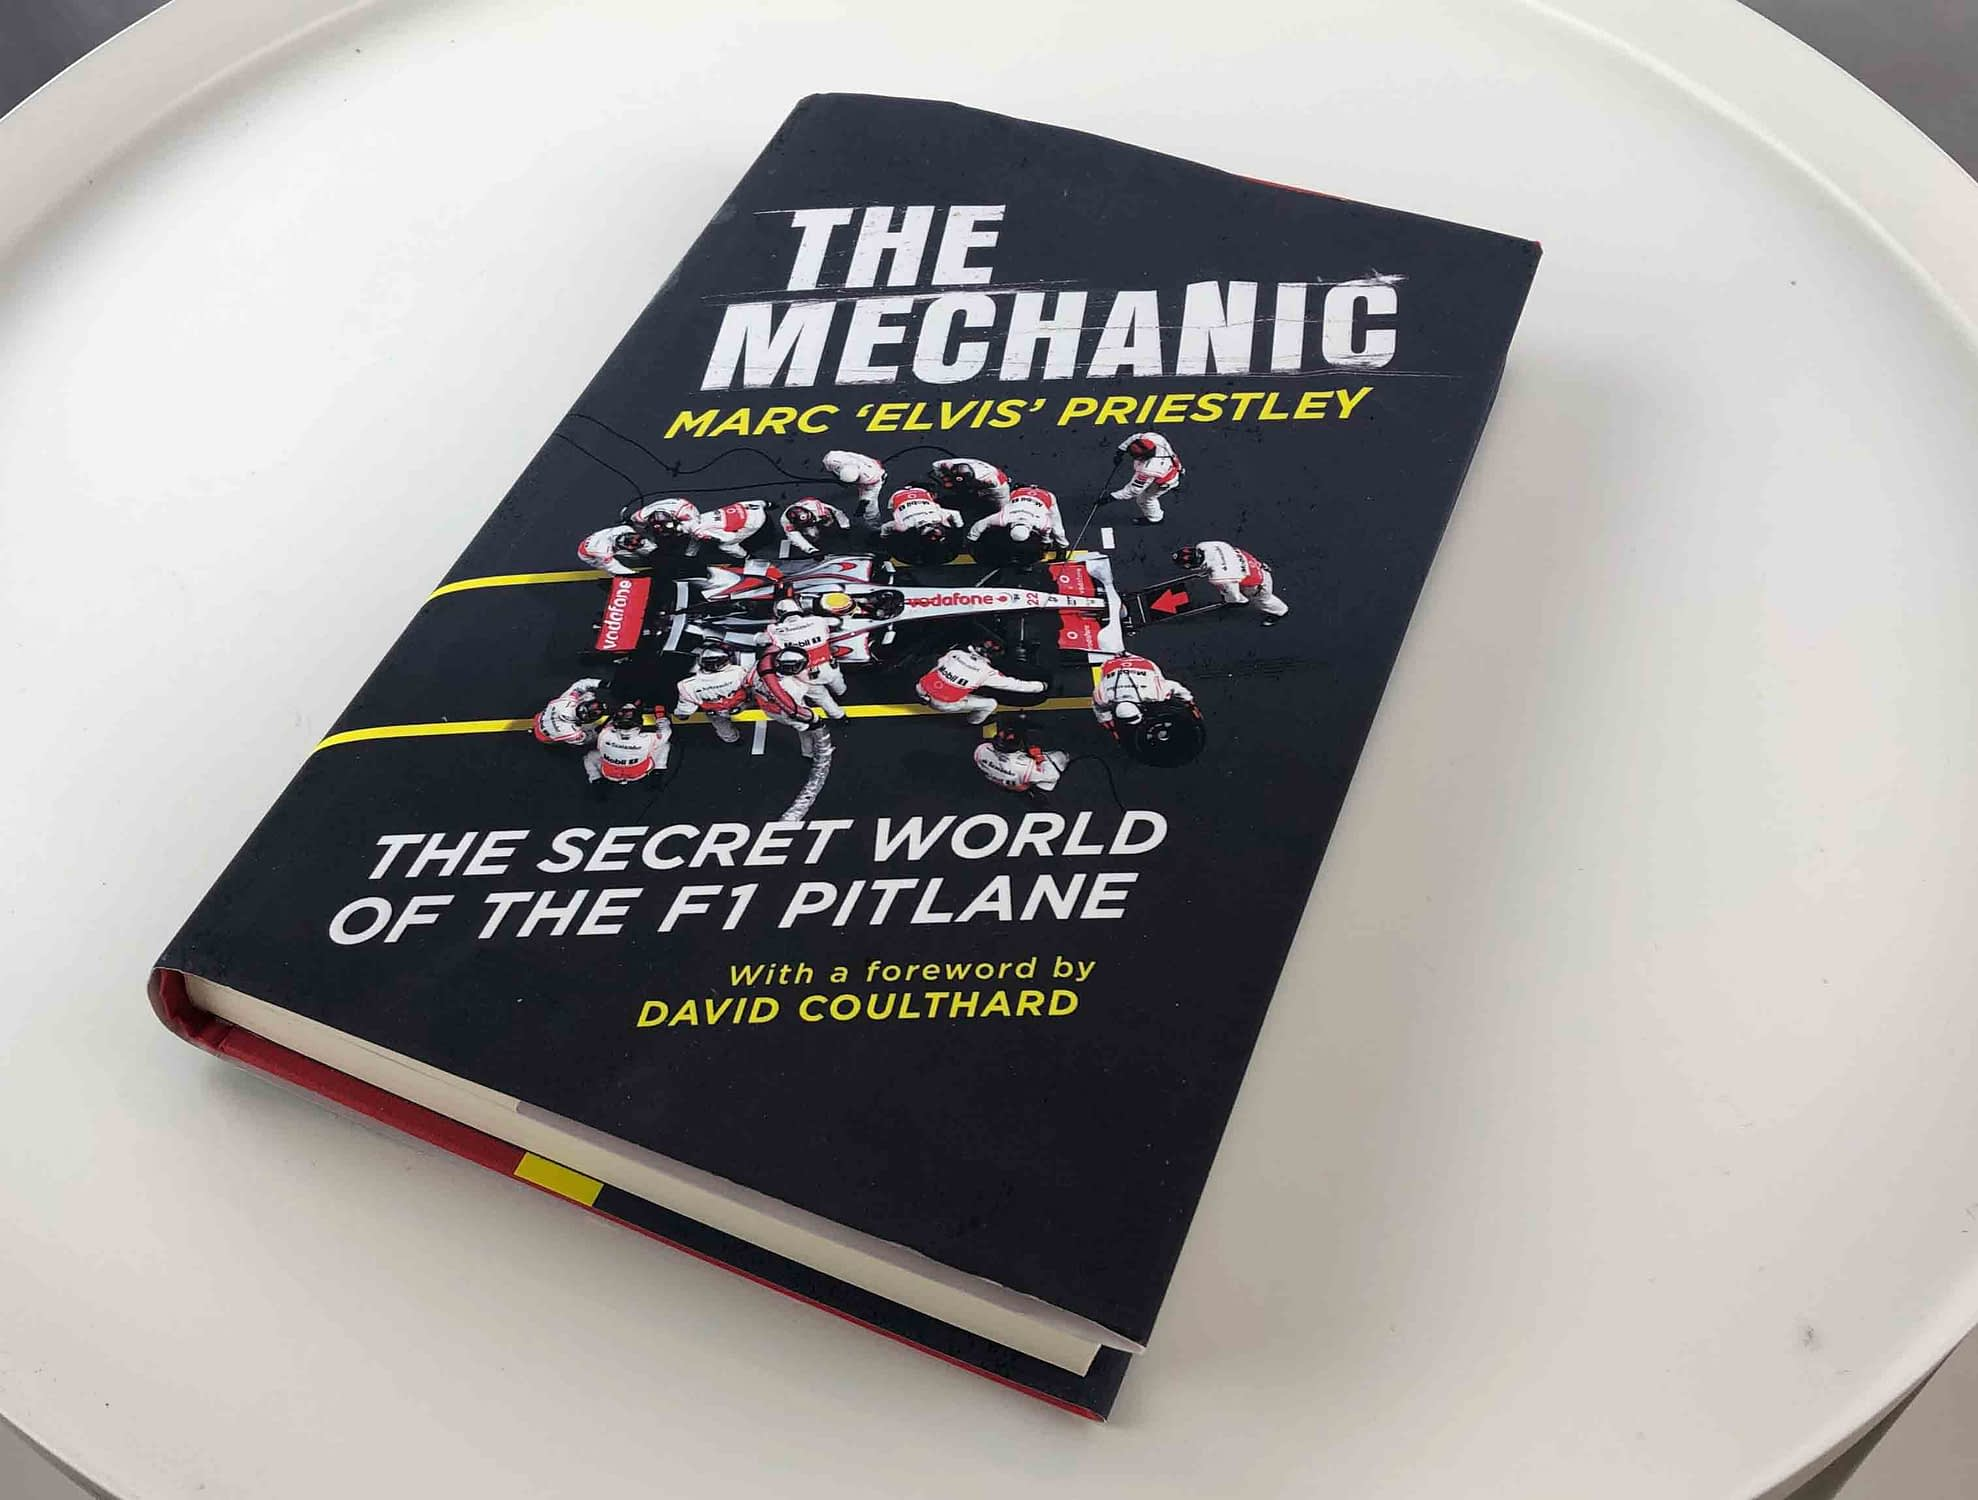 The mechanic book cover